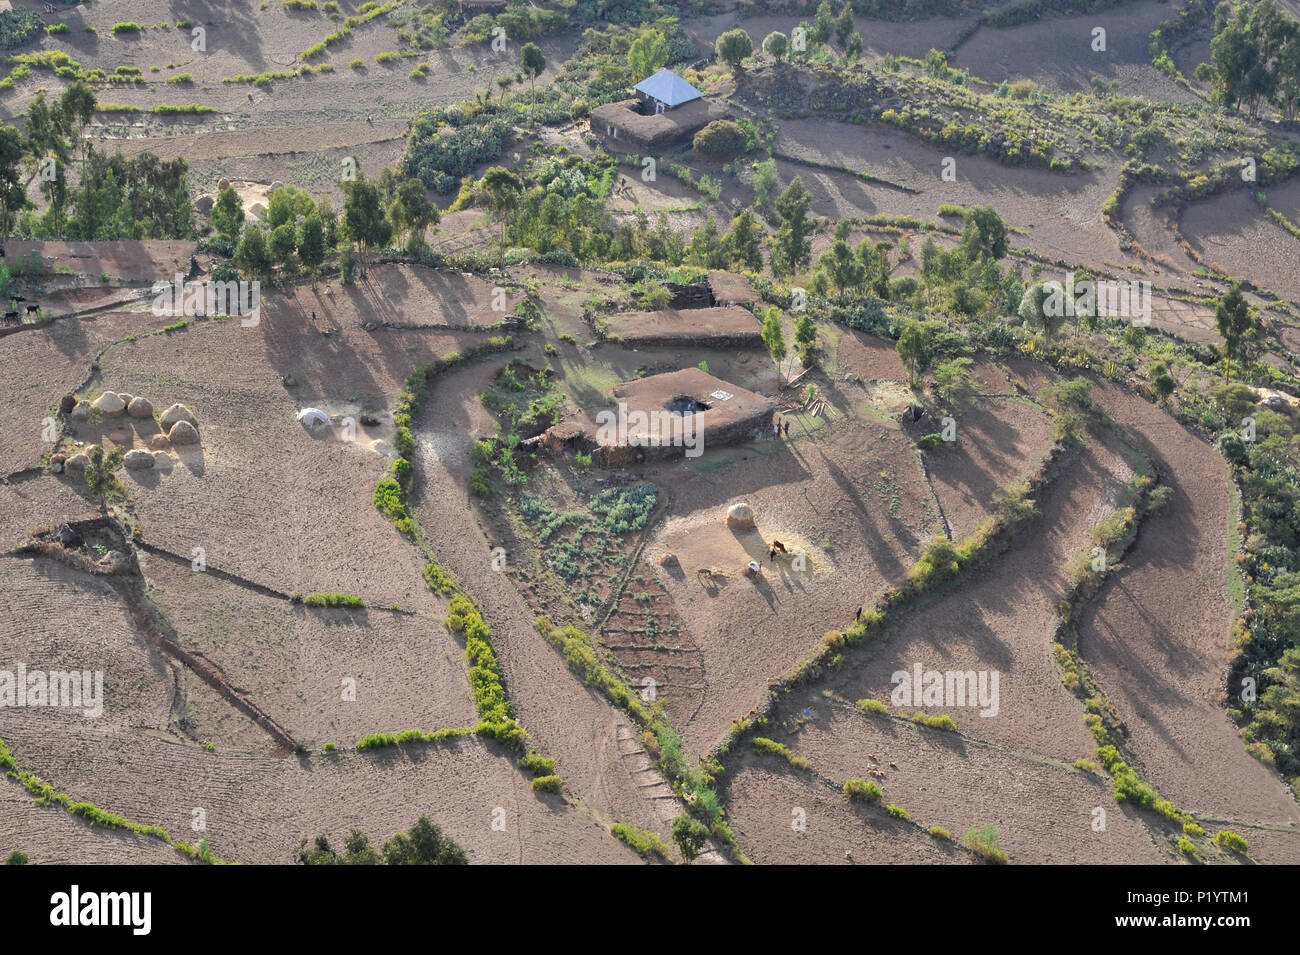 Ethiopia, Tigray area, aerial view of a landscape of traditional farms in the middle of cultivated fields - Stock Image